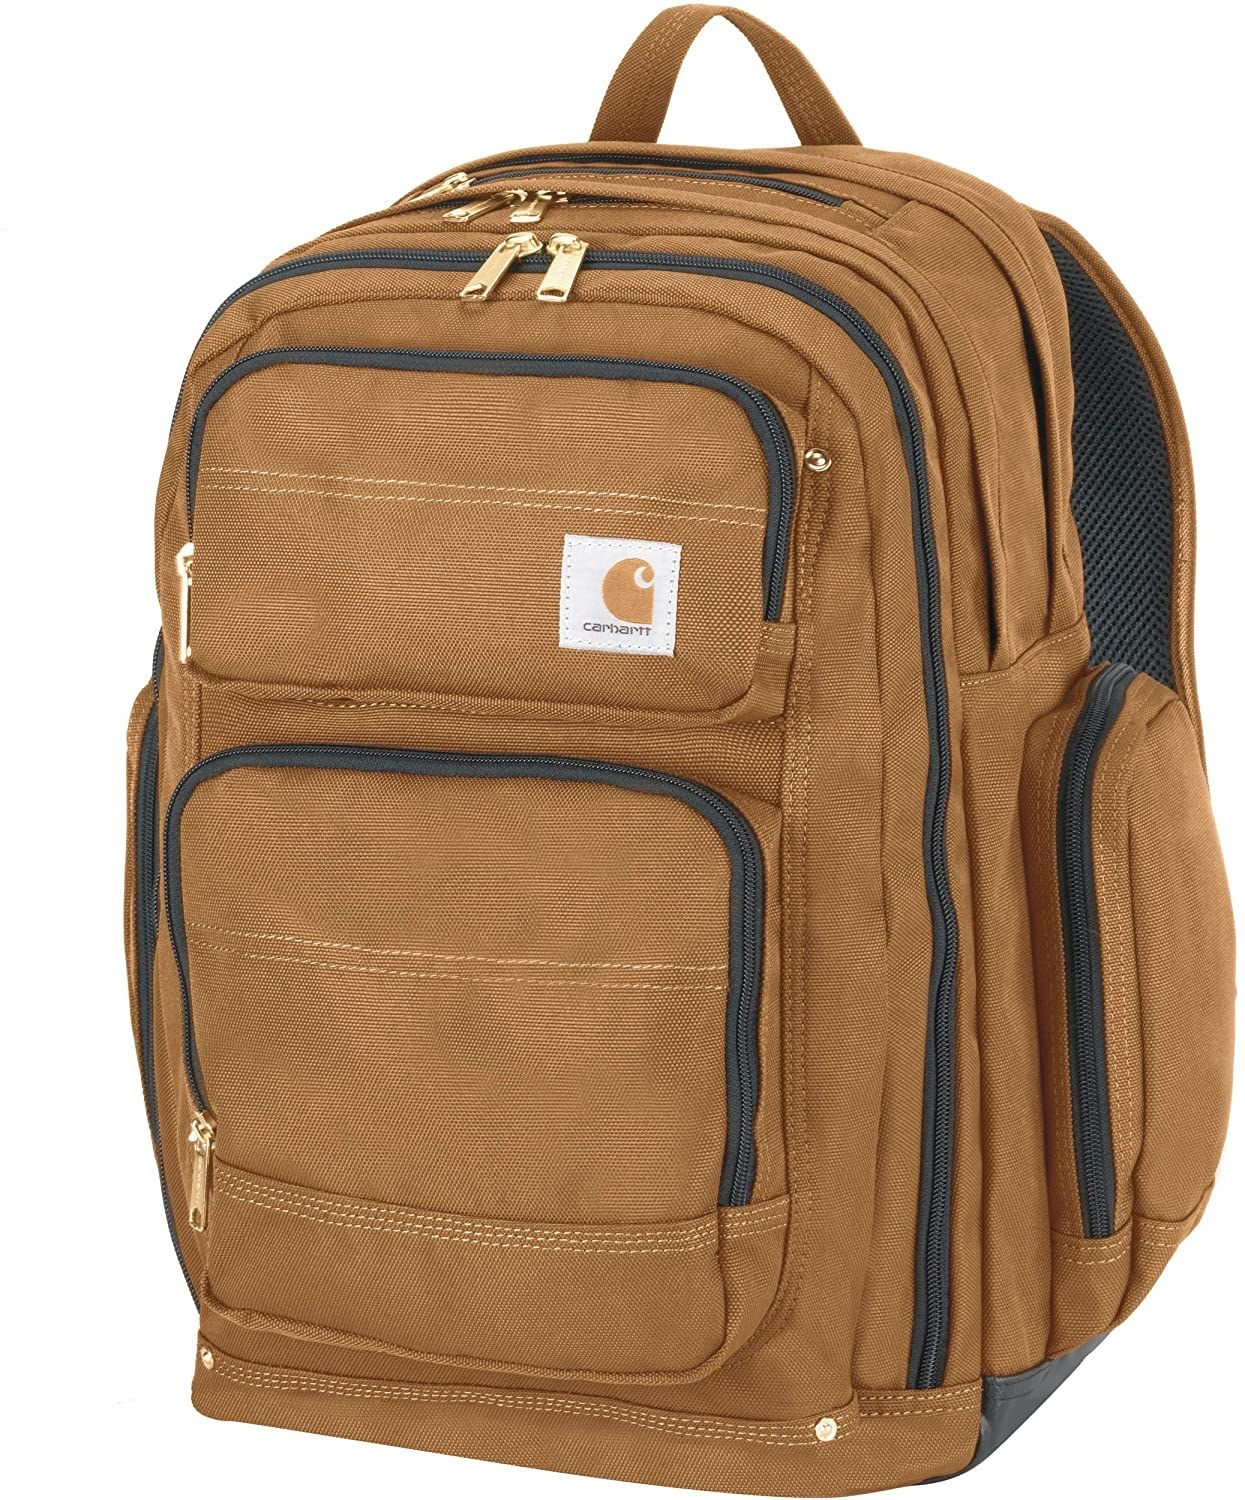 the backpack in brown